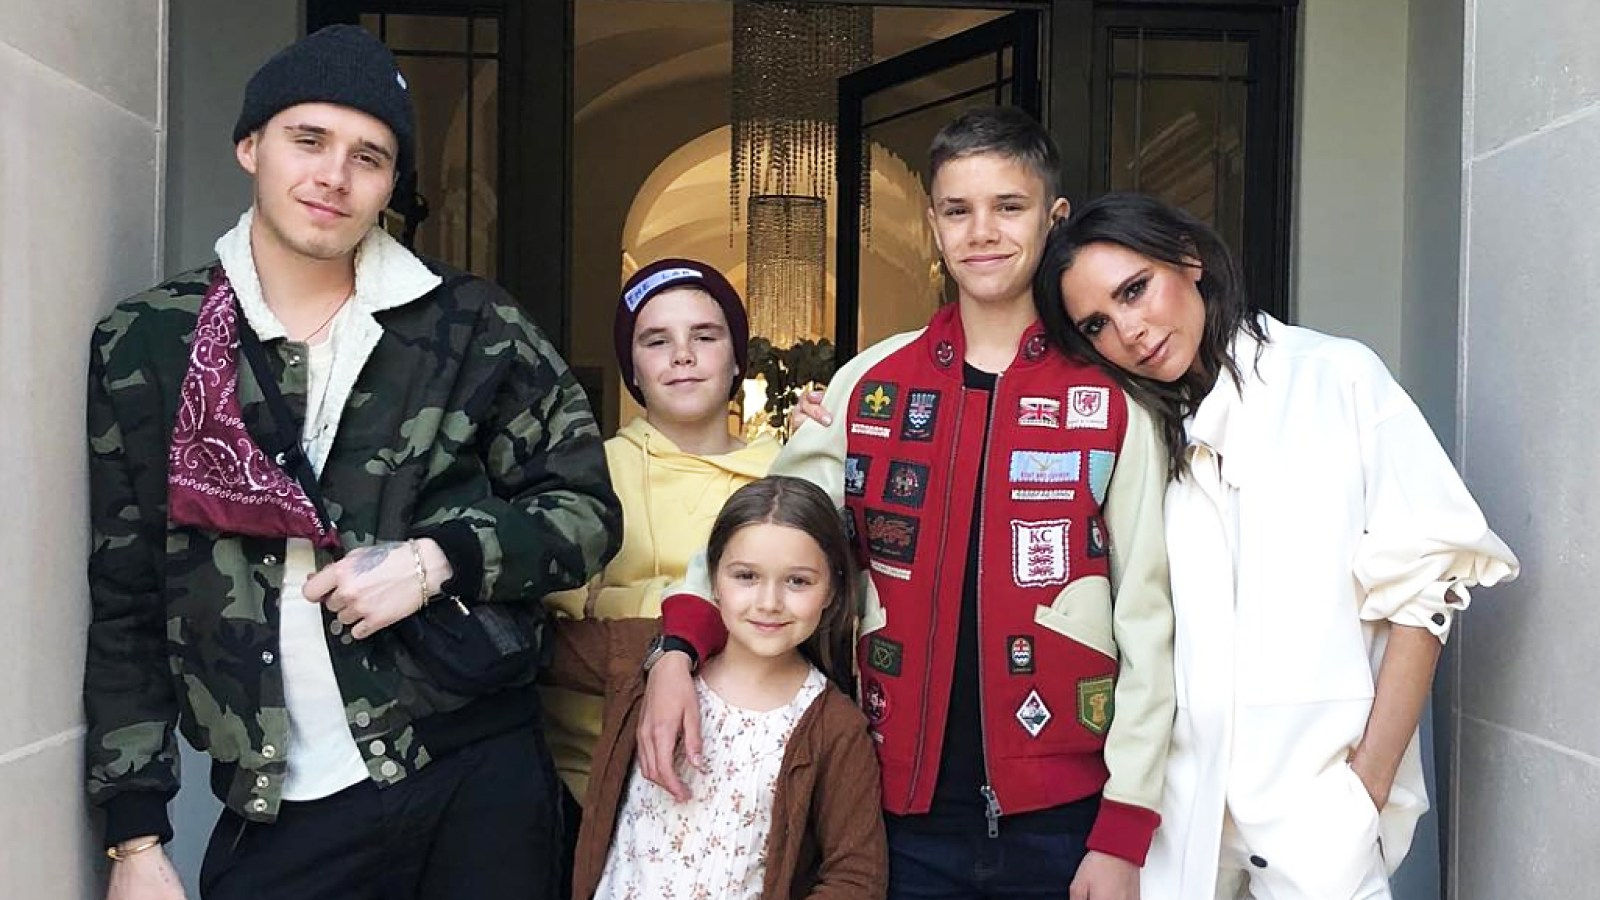 Victoria Beckham Celebrates Birthday With Husband David Family Pics